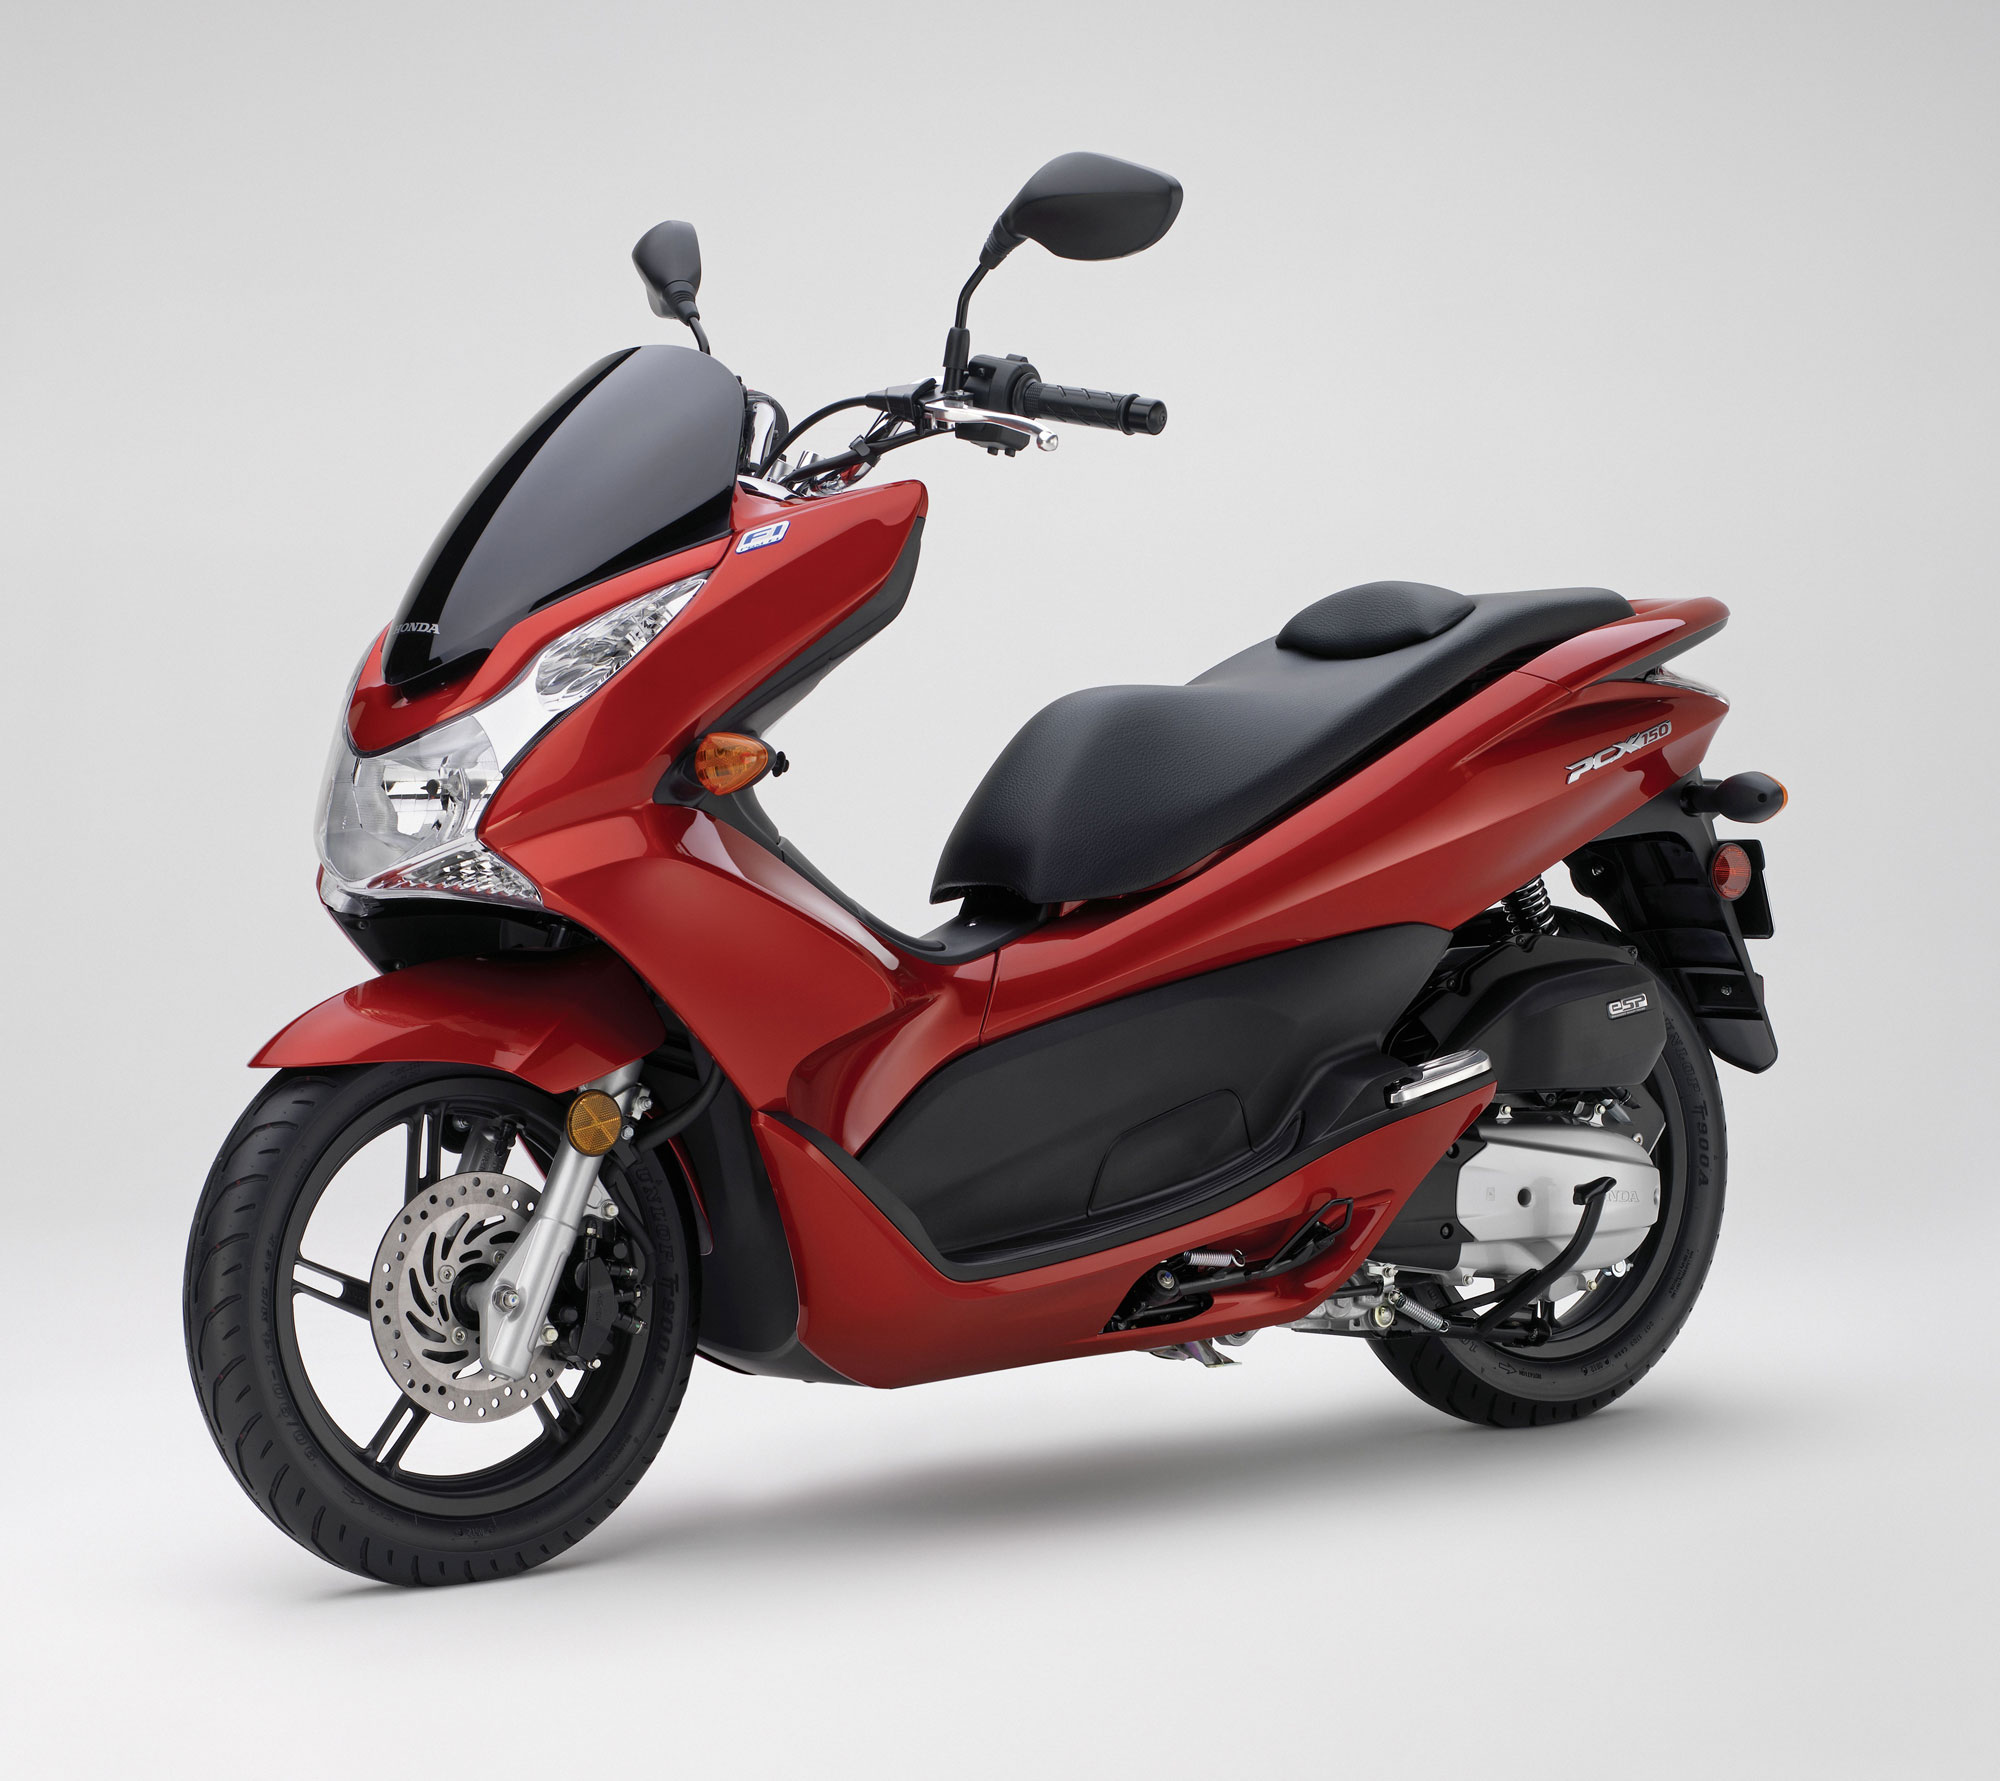 2013 honda pcx150 review total motorcycle 2016 car release date